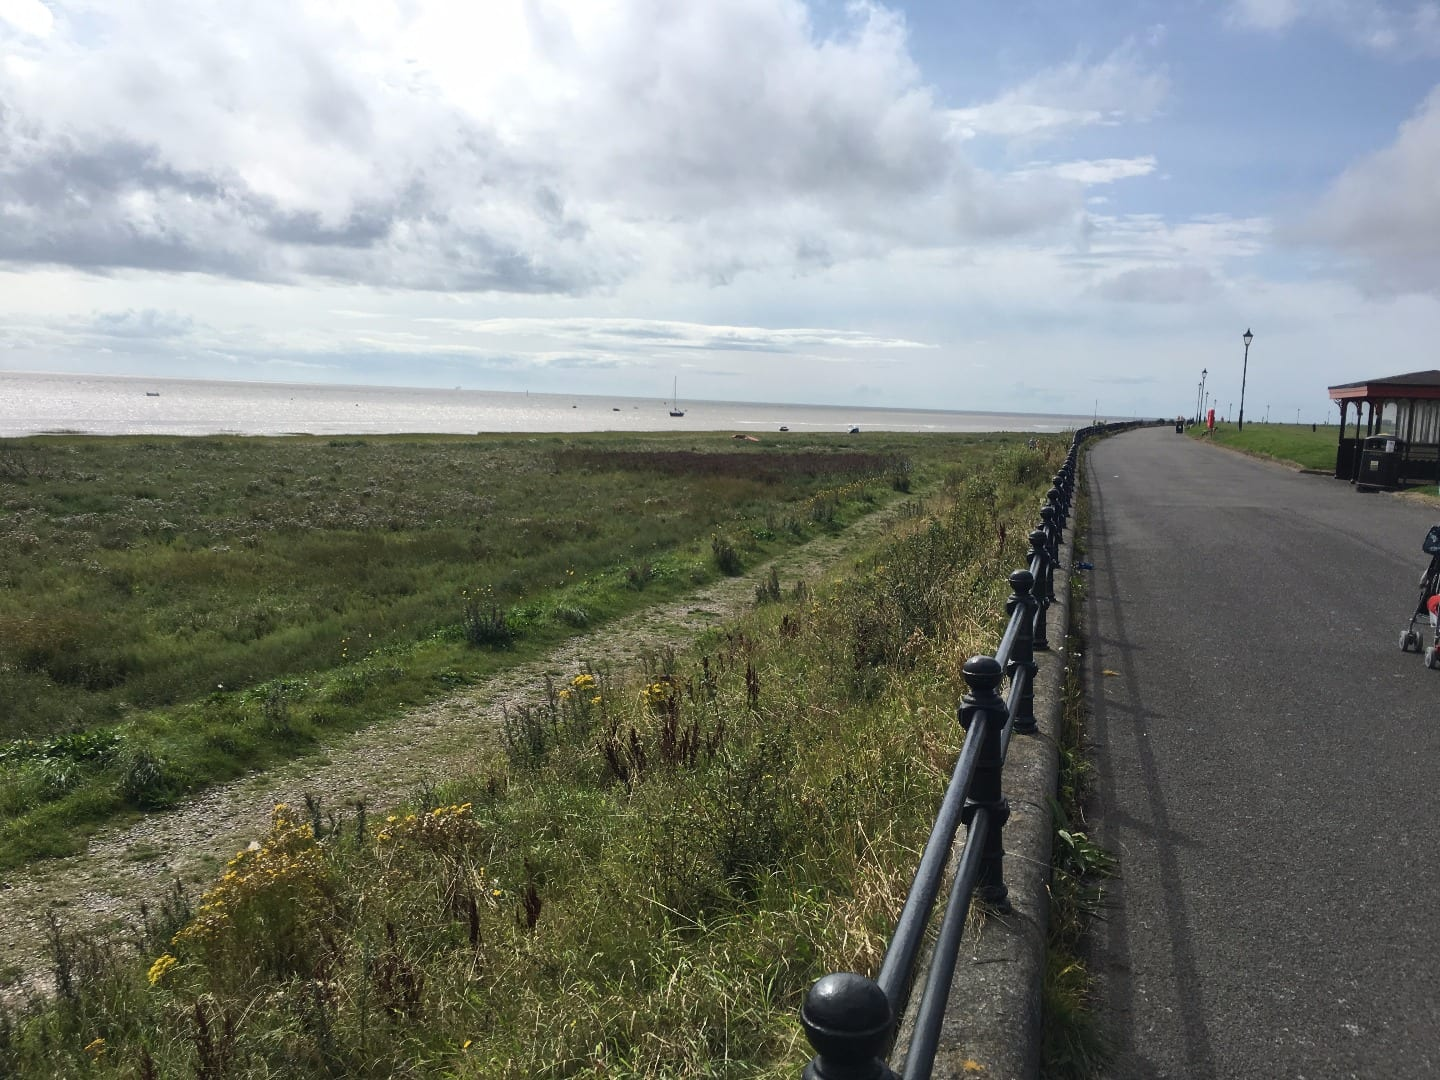 Lytham seafront, looking in the direction of the Irish Sea